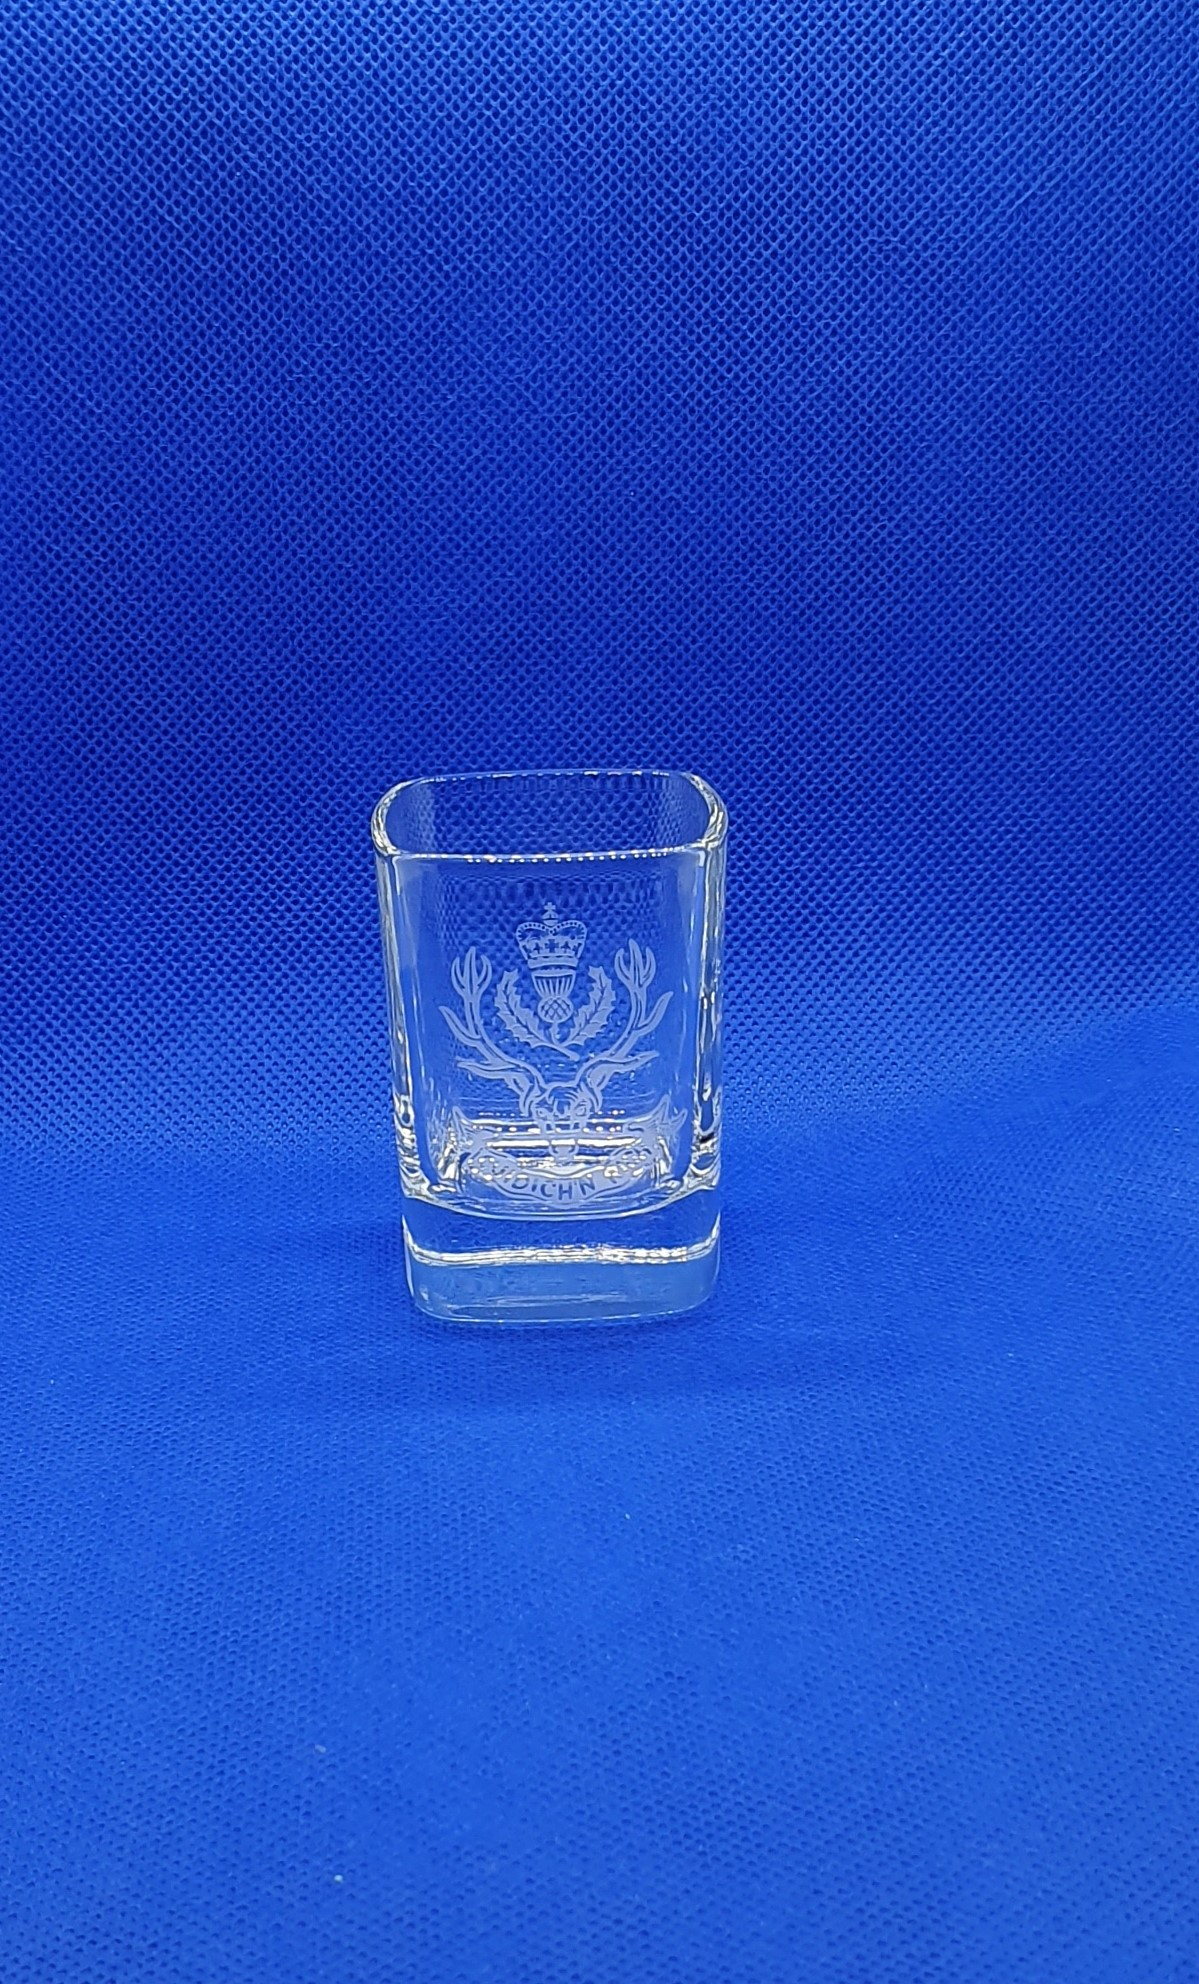 Dram Glass